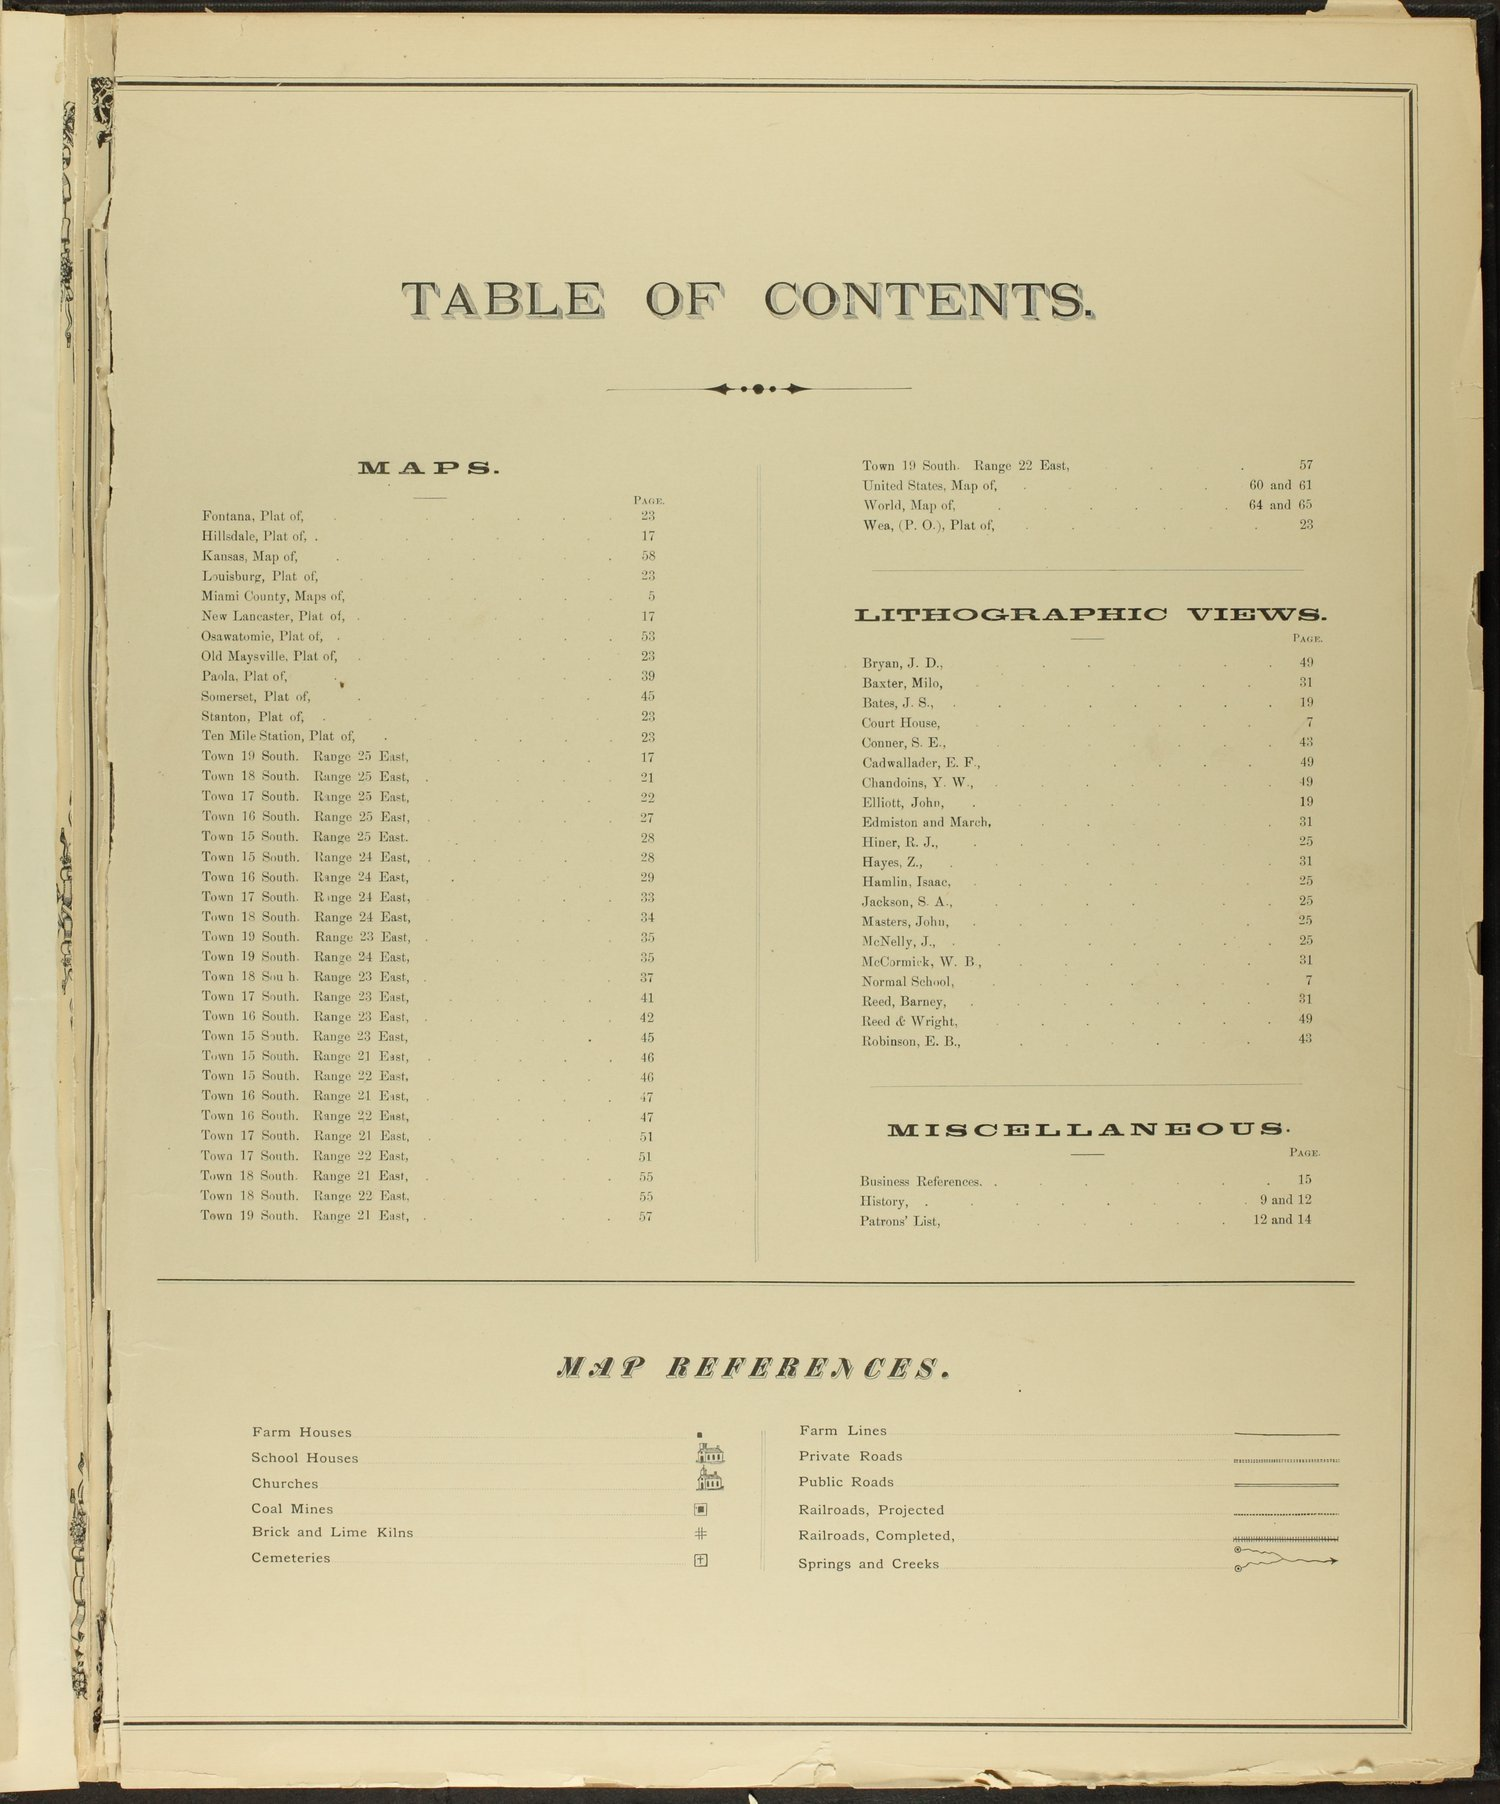 An illustrated historical atlas of Miami County, Kansas - Table of Contents